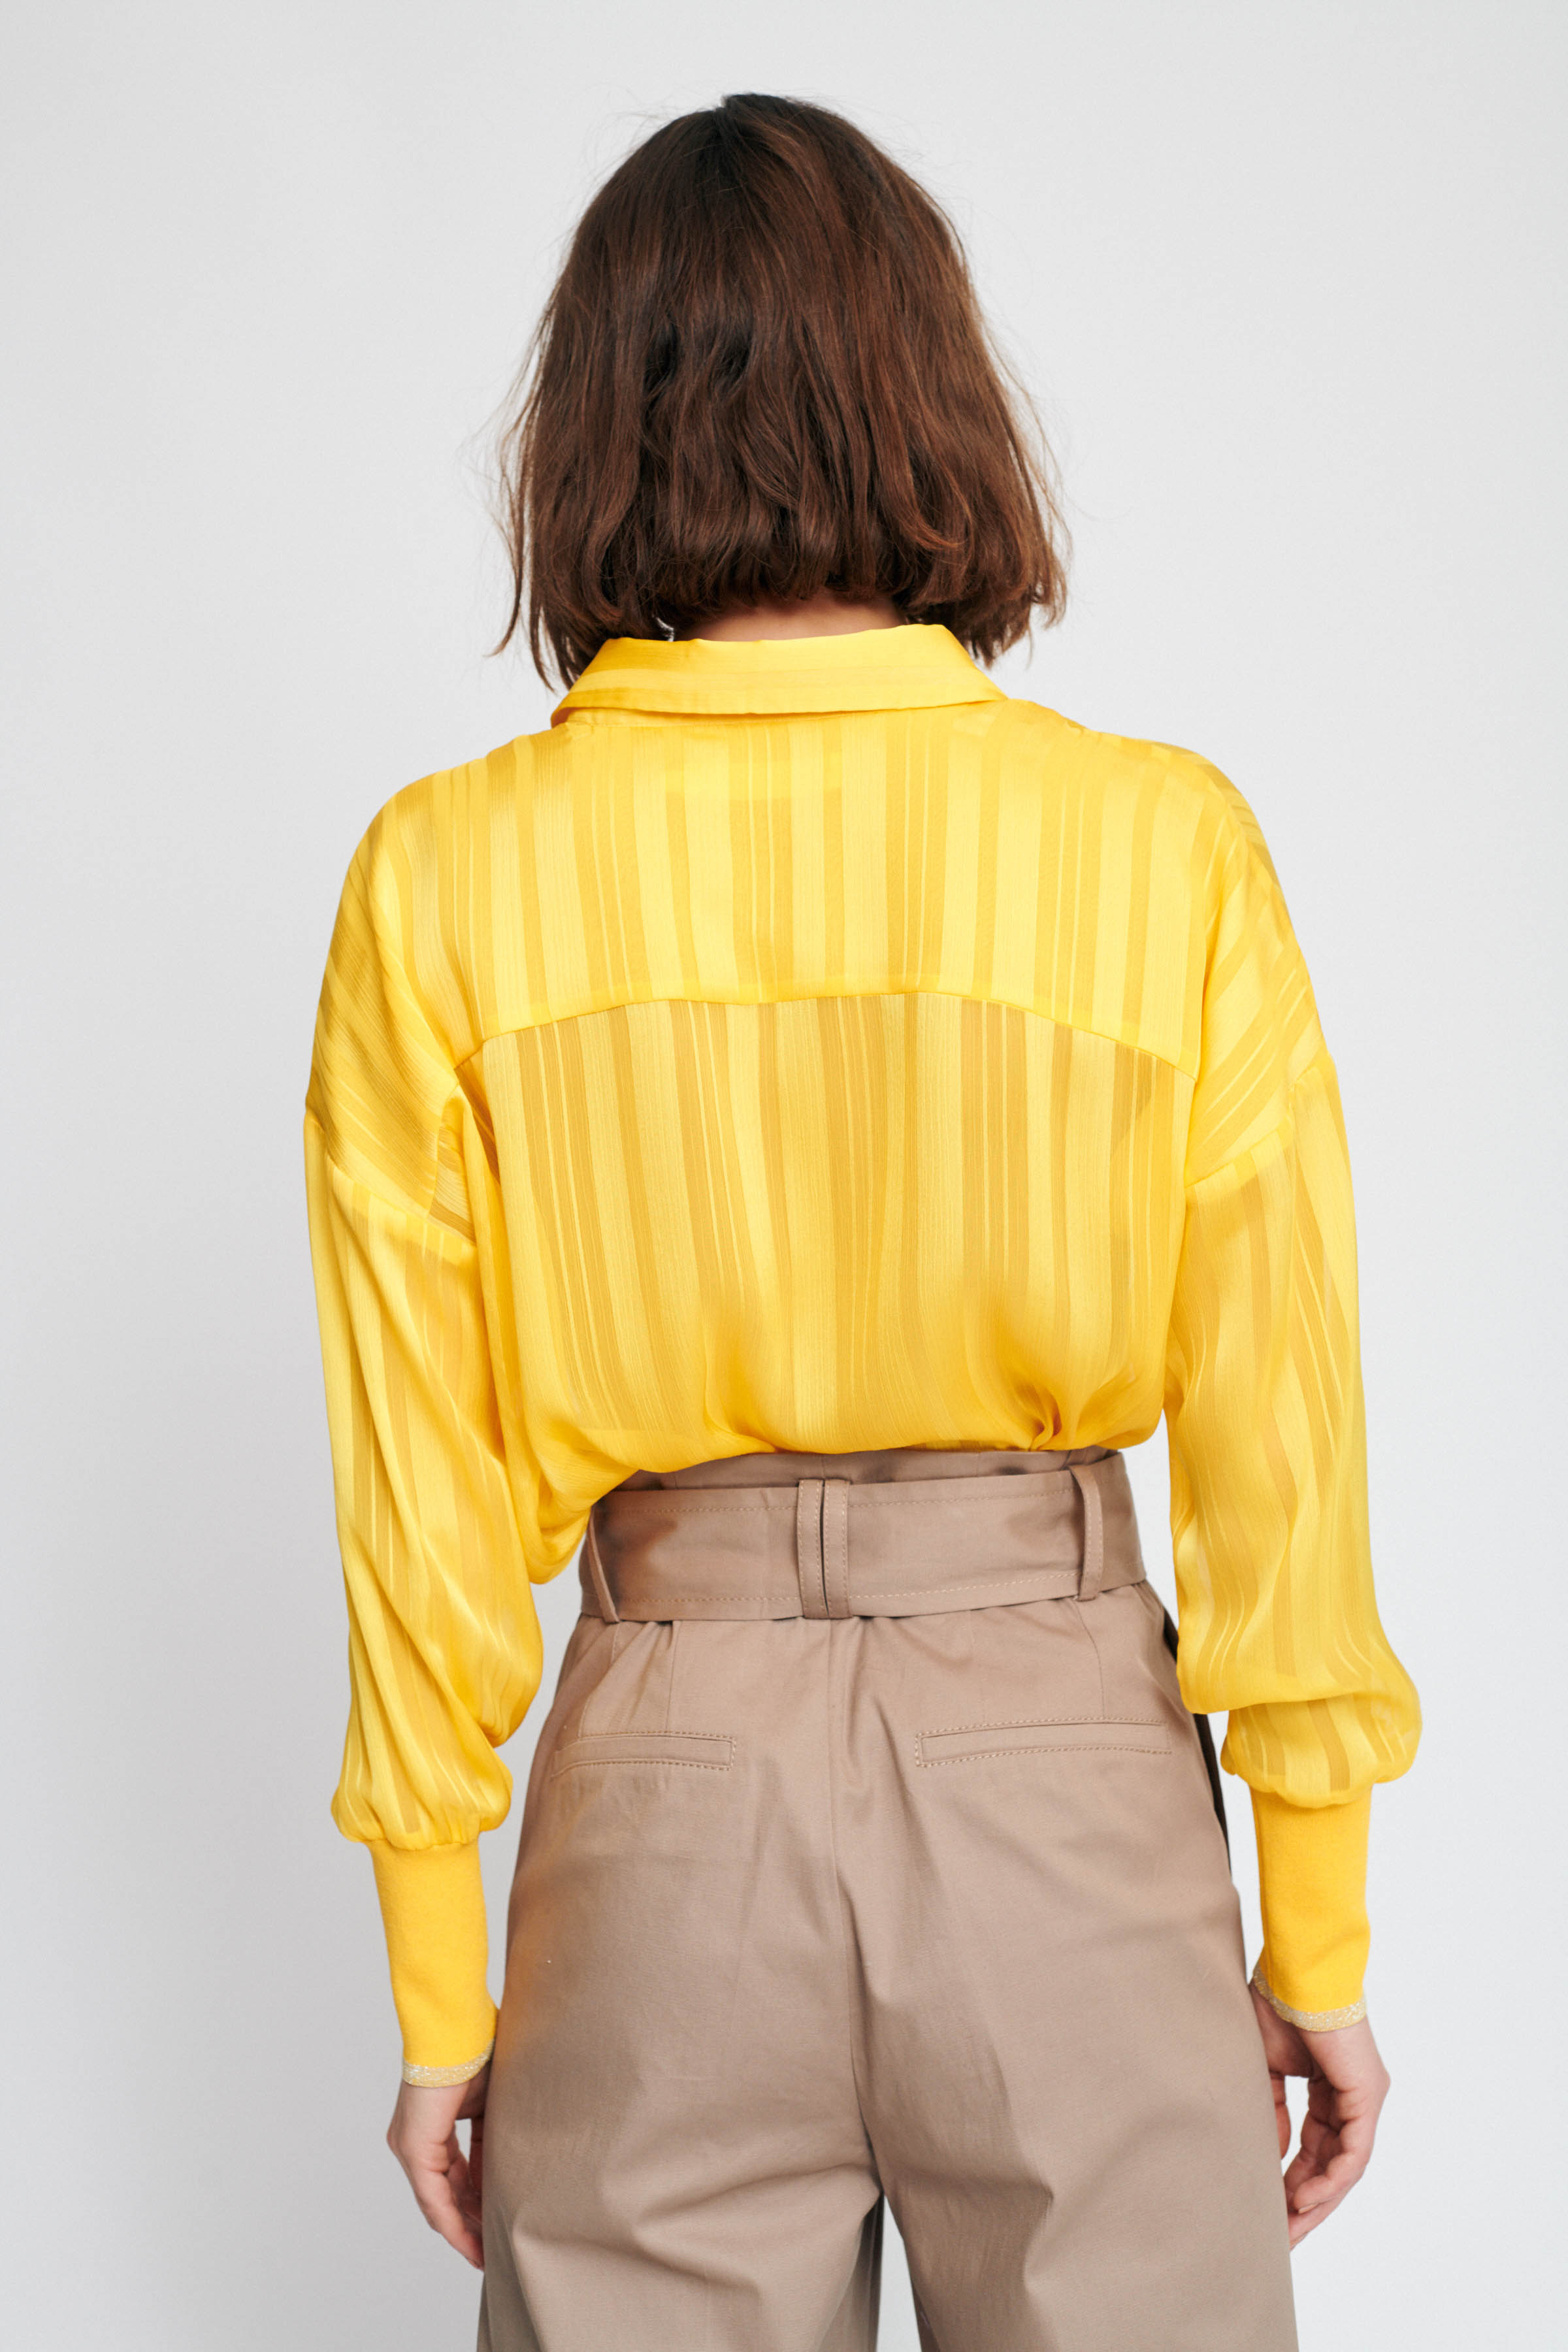 Spectra Yellow Top – Køb Spectra Yellow Top fra str. 32-42 her